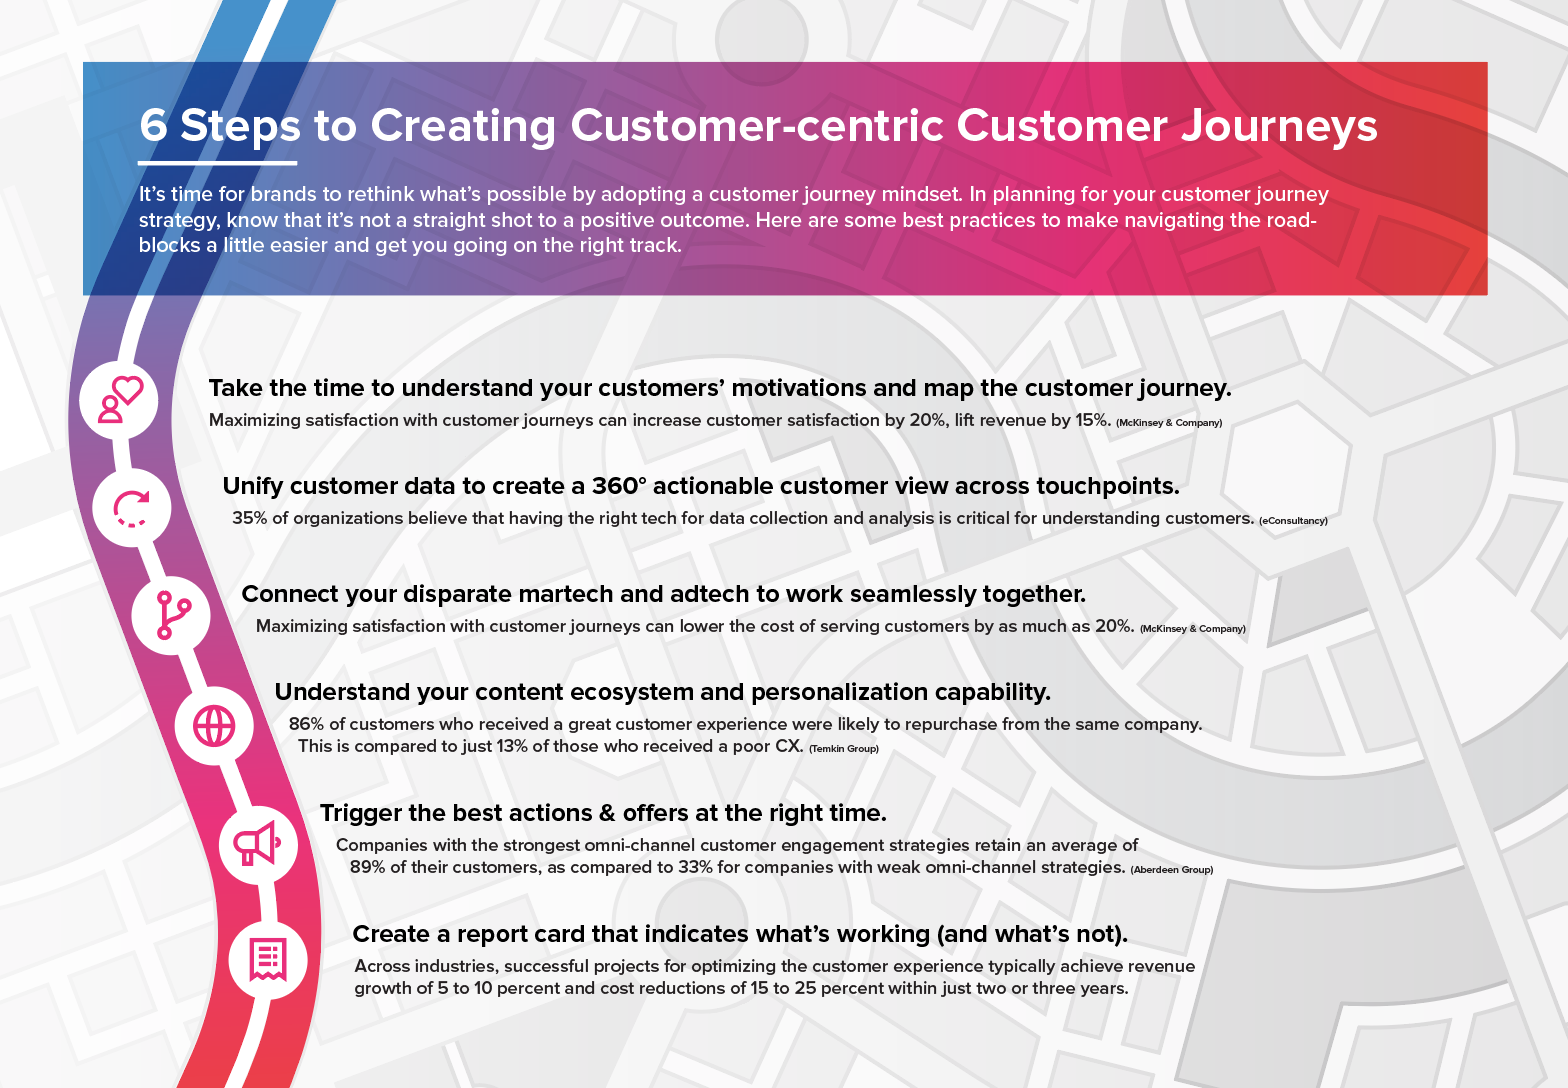 6 Steps to Creating Customer-Centric Customer Journeys